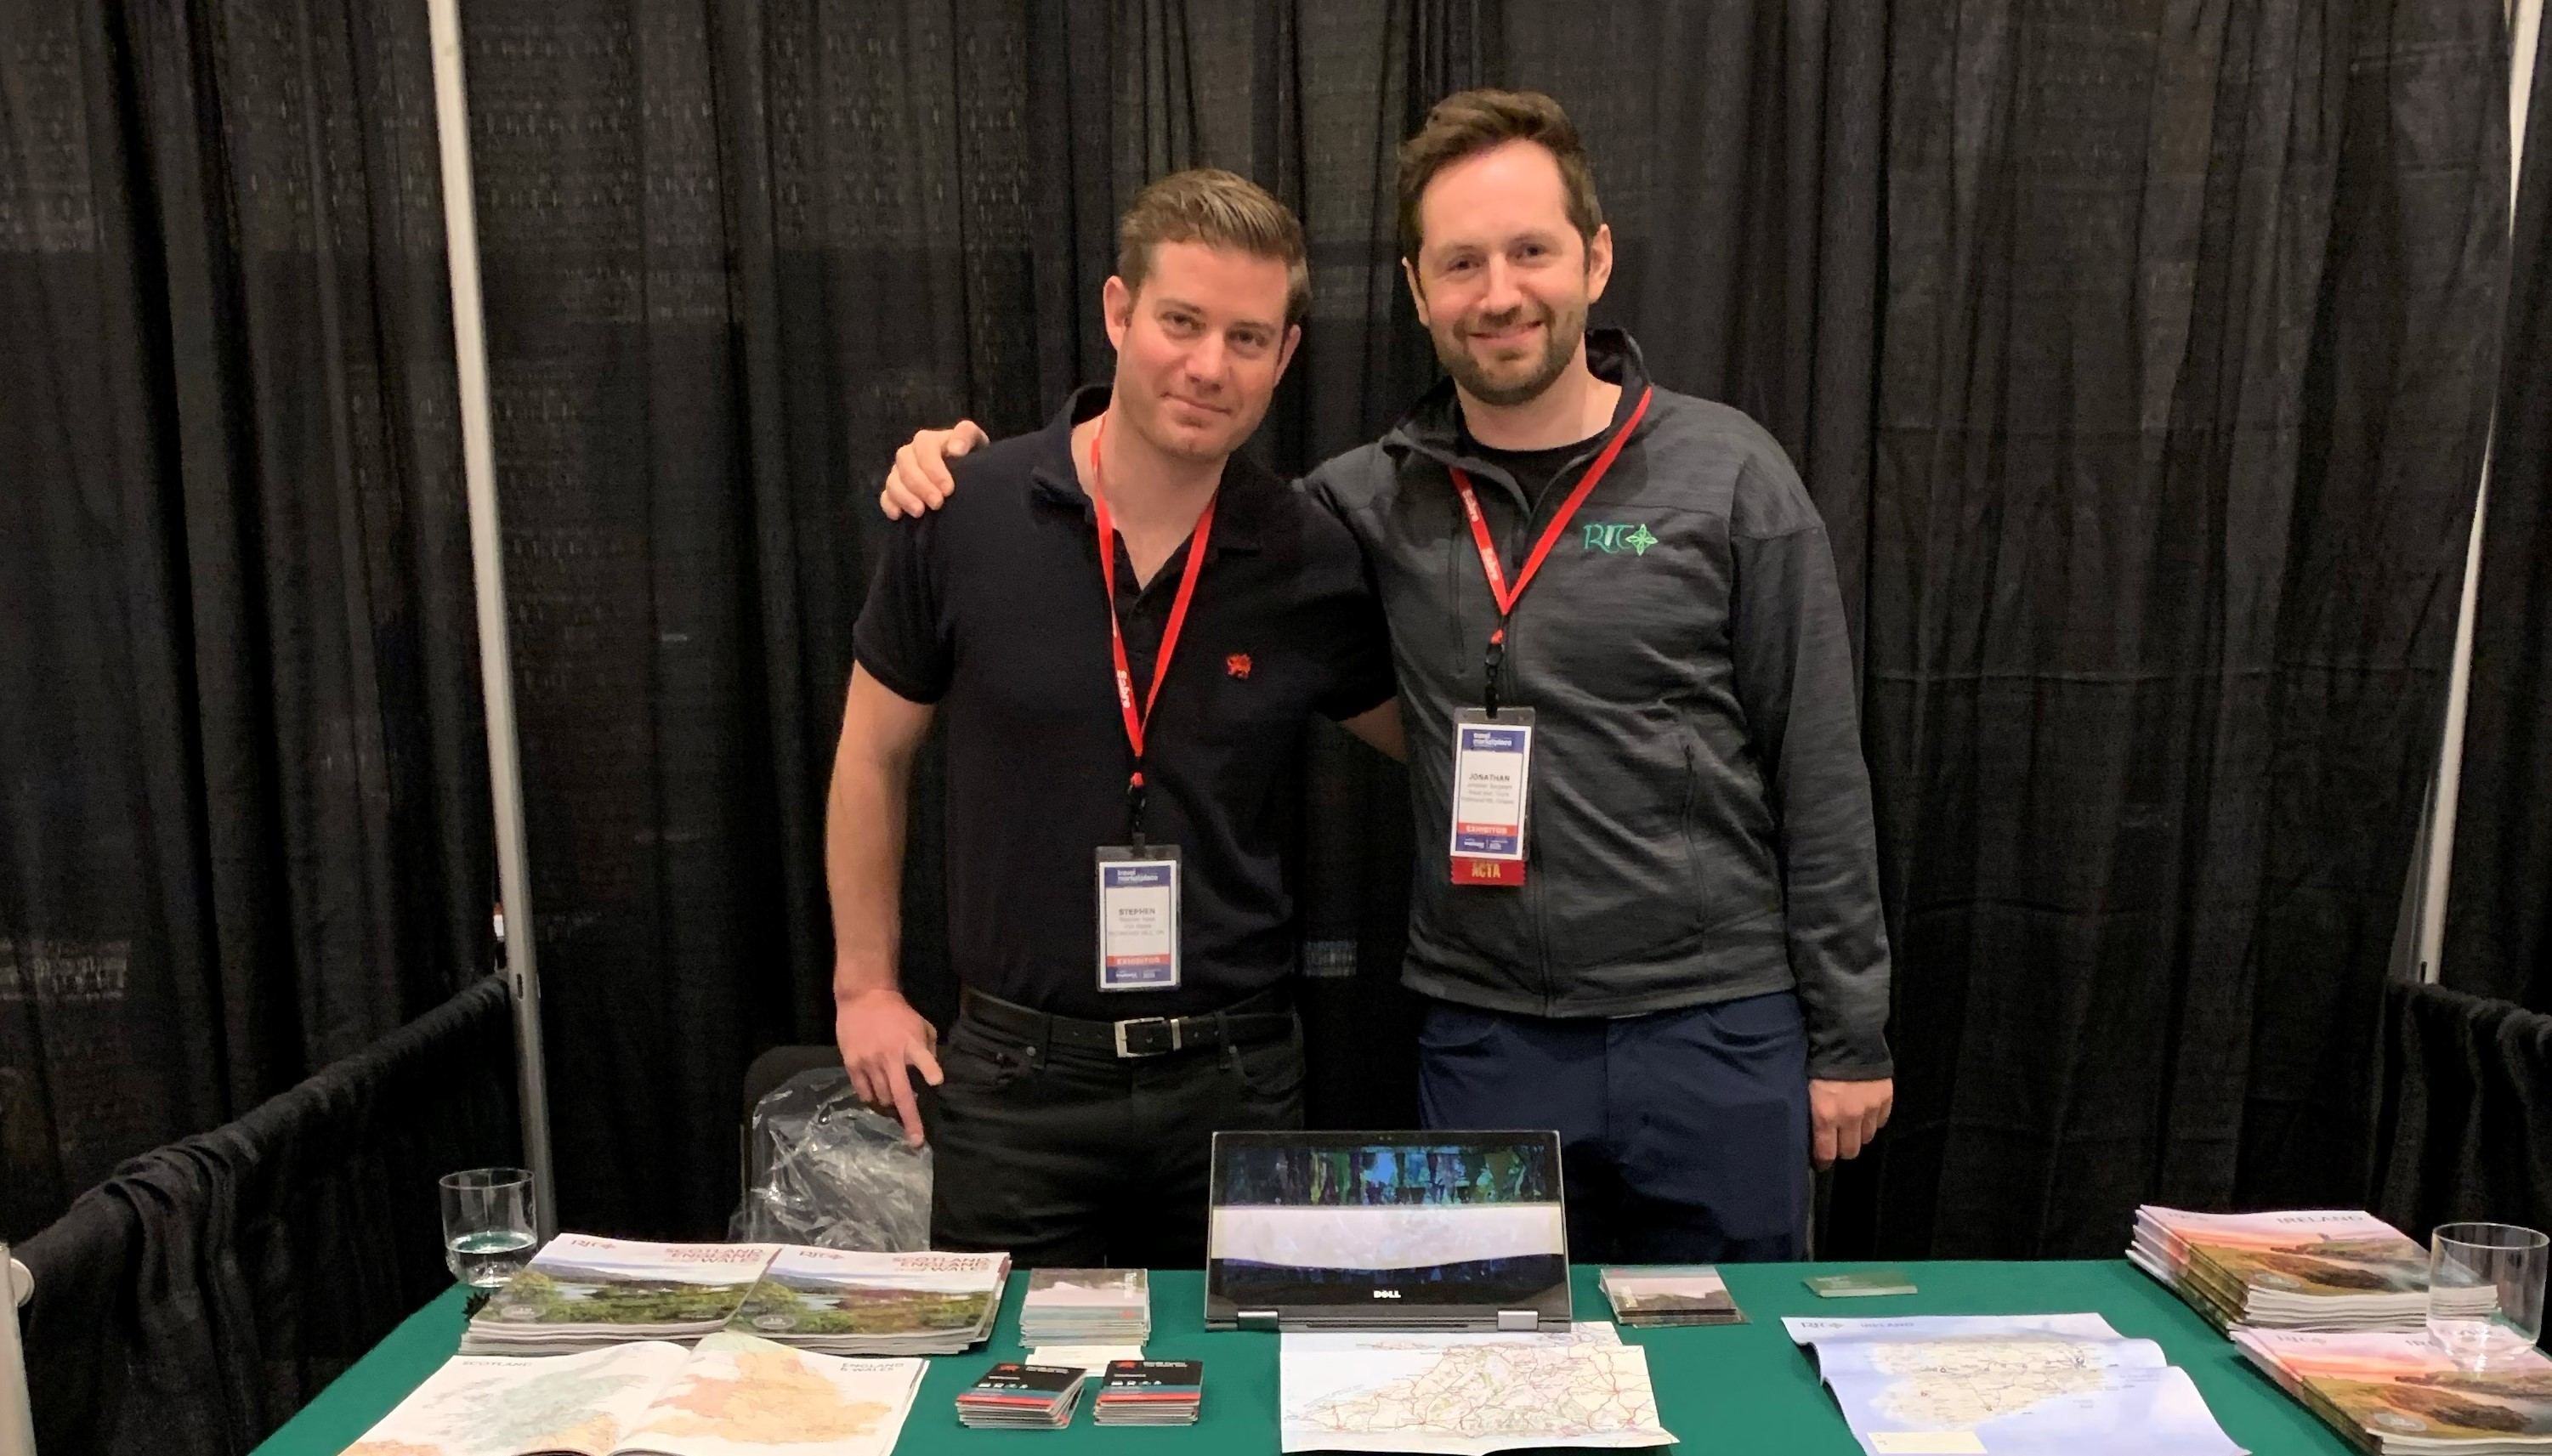 Stephen Nase and Jonathan Sargeant from Royal Irish Tours at their booth during the Travel Market Place West 2020 Trade show